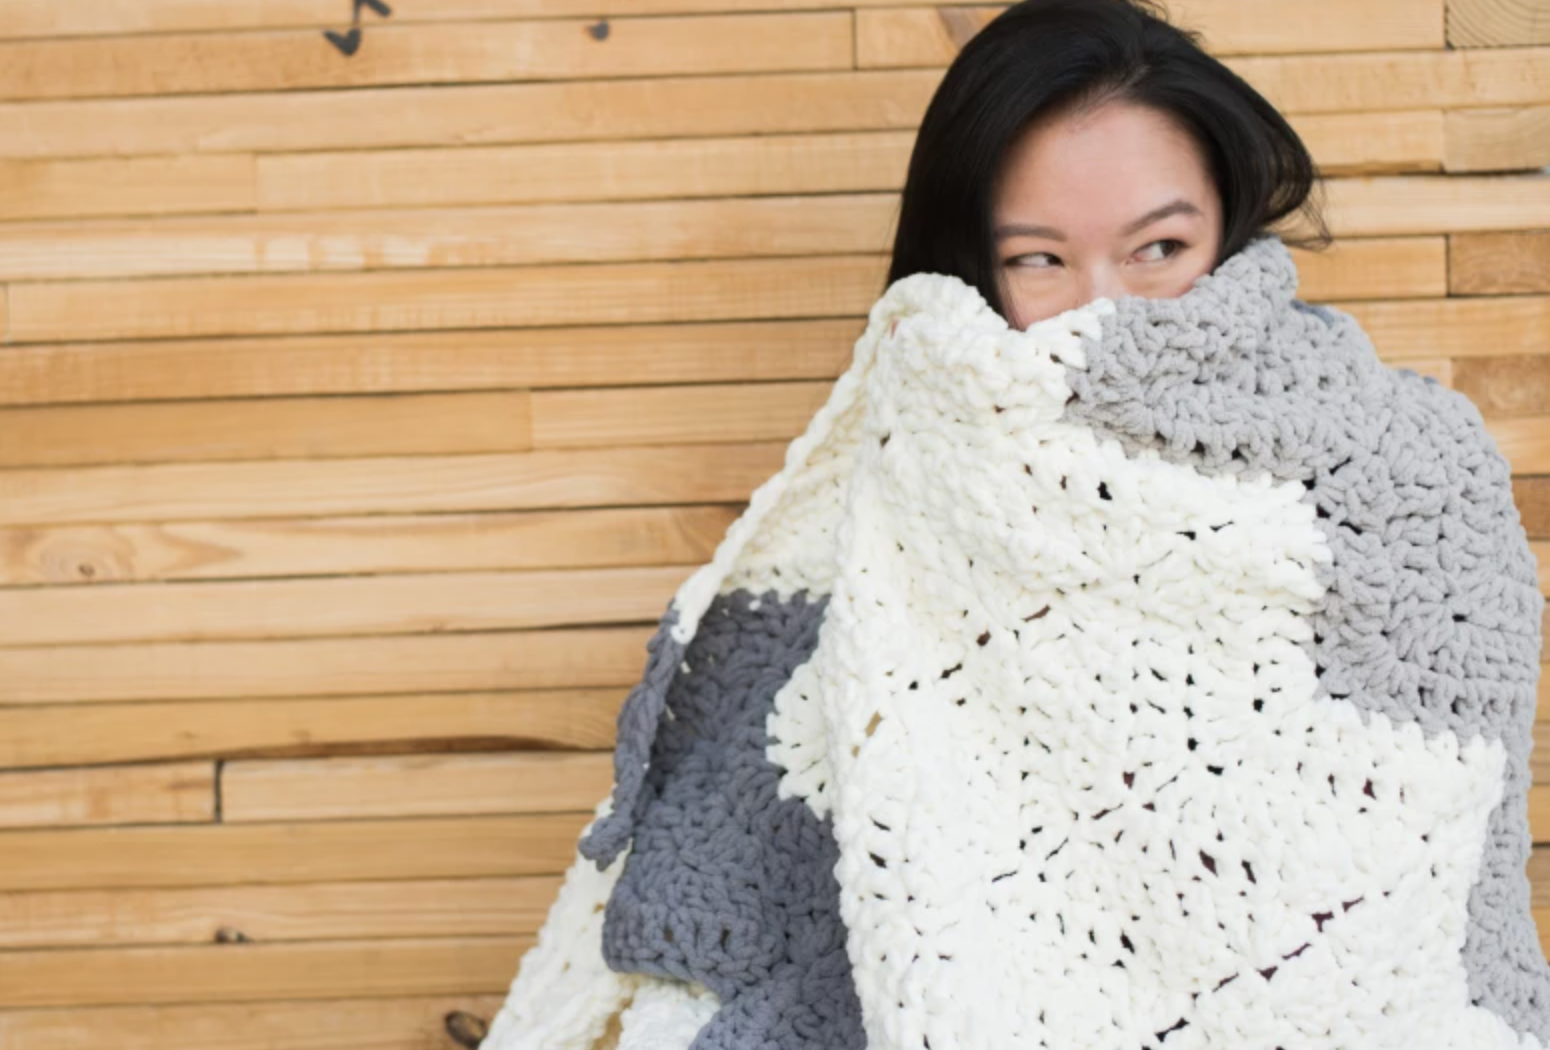 woman wrapped in crochet gray and white blanket